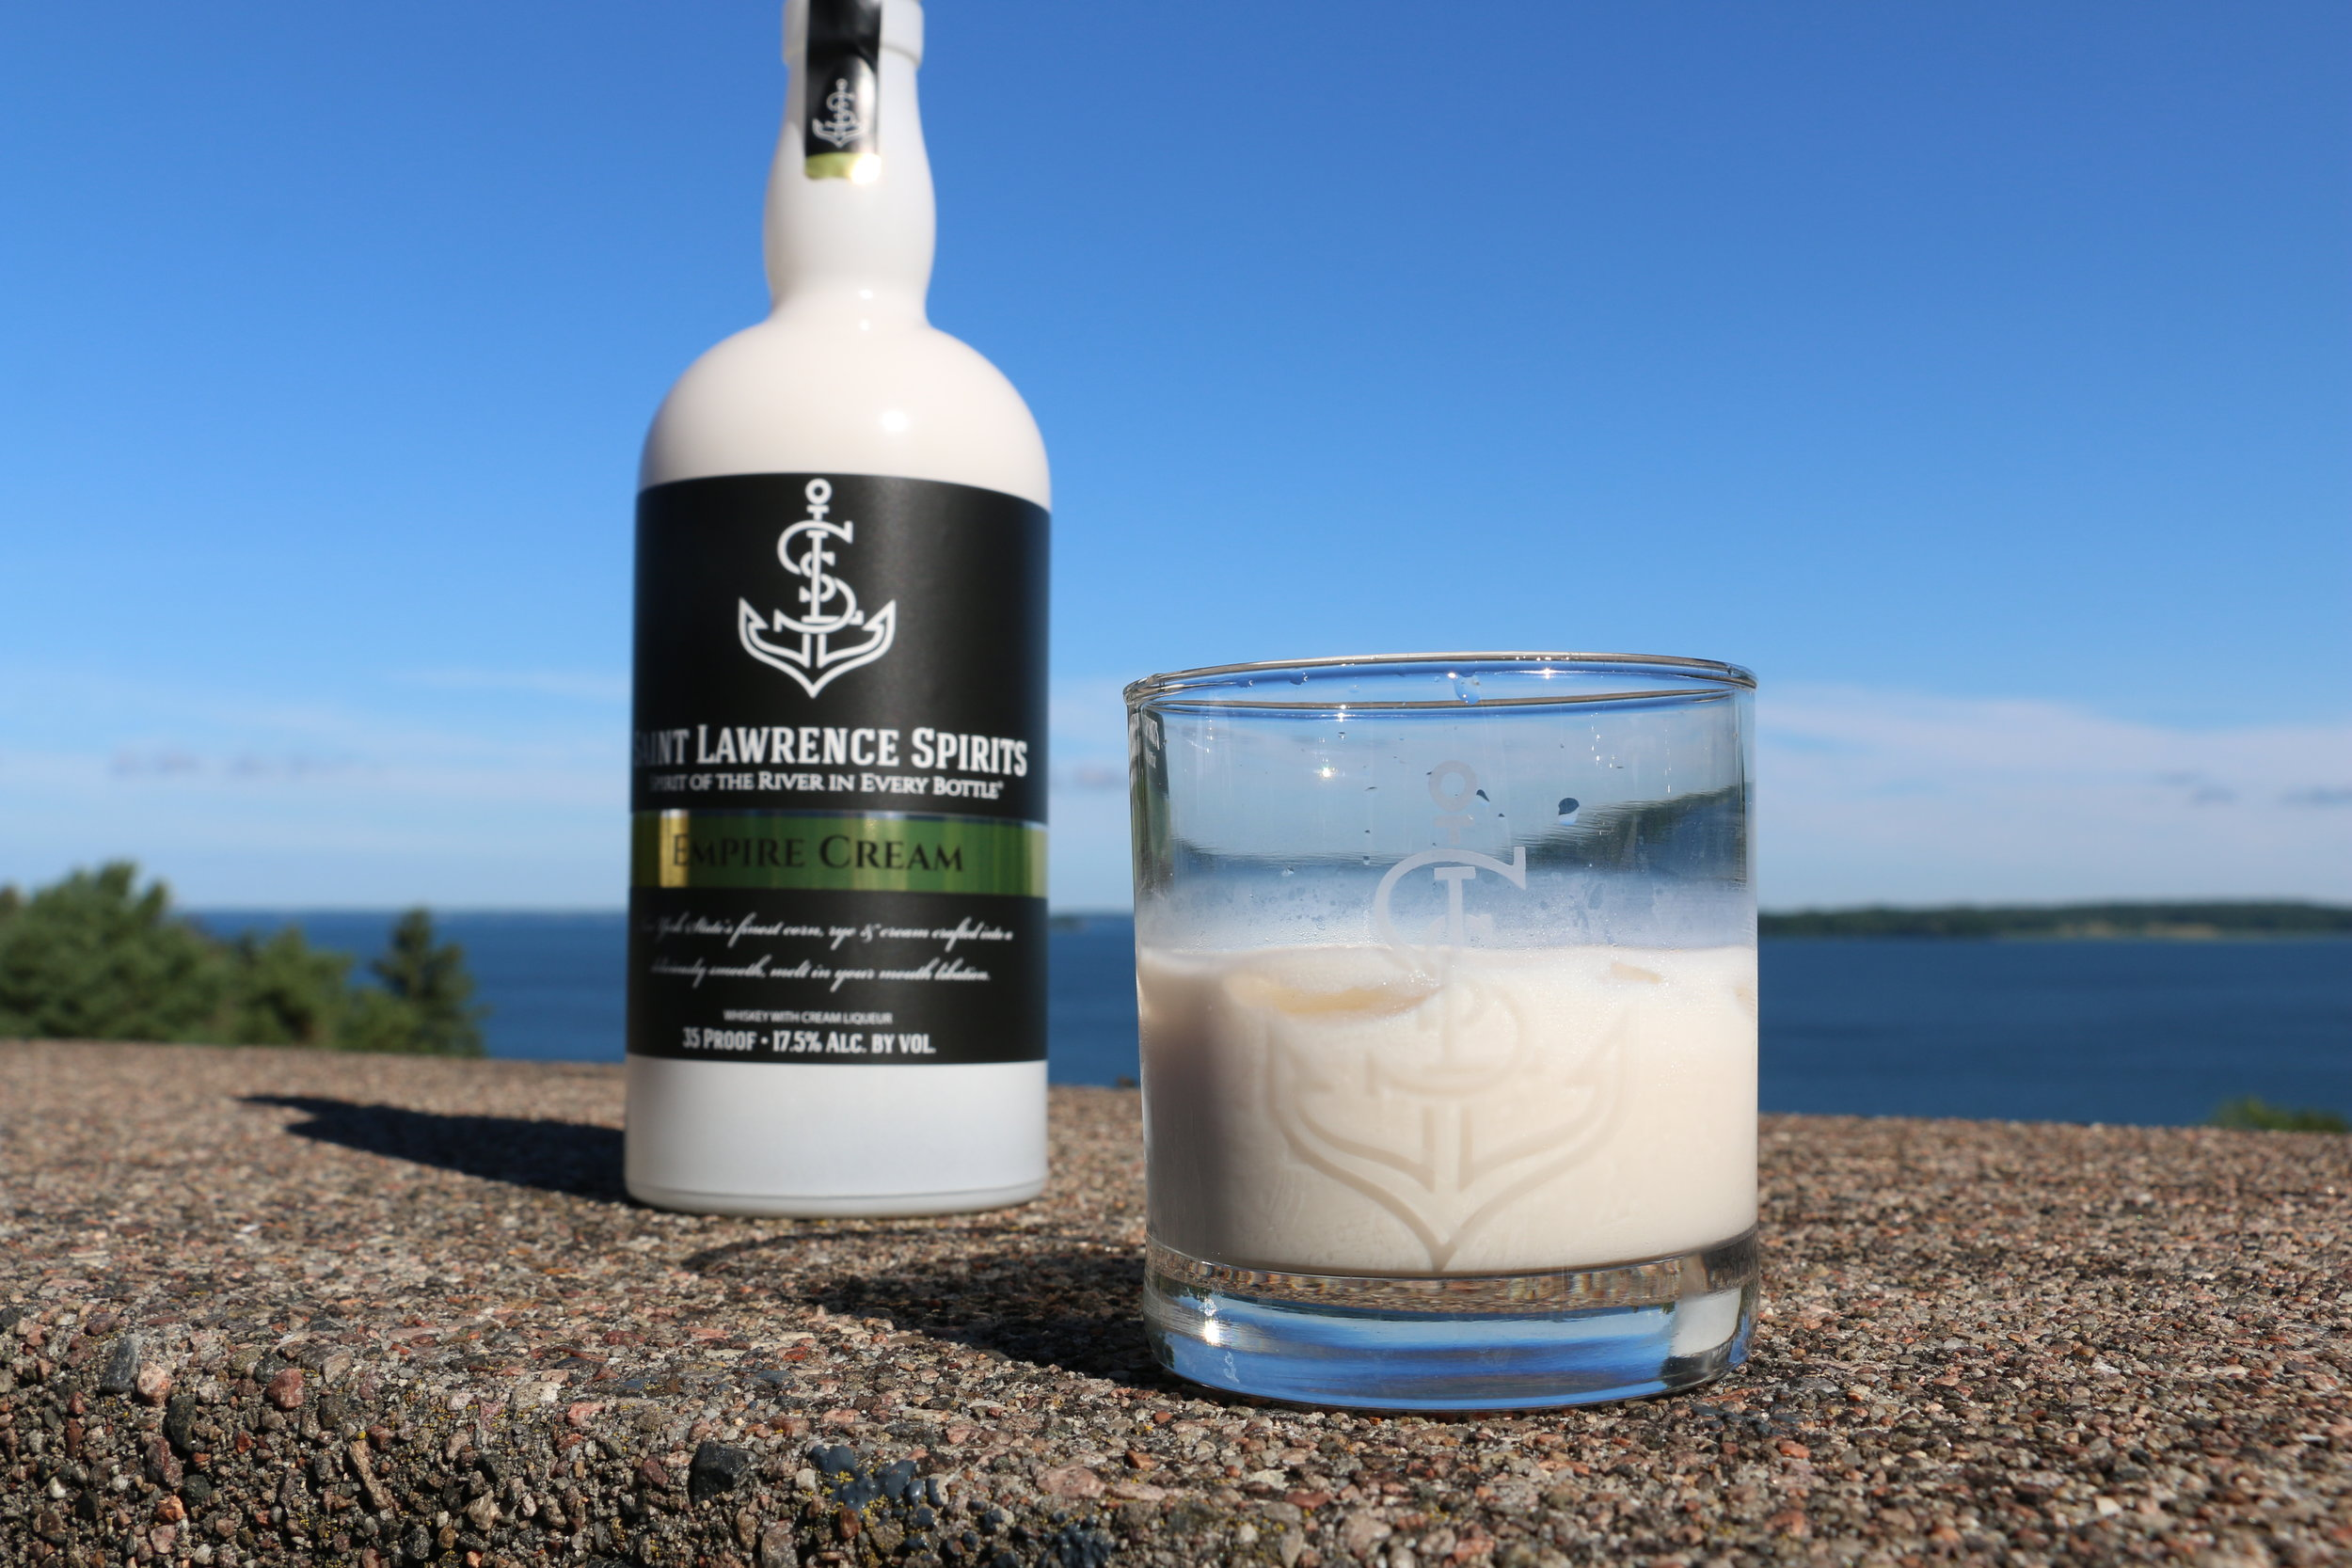 Saint Lawrence Spirits Empire Cream being enjoyed on the Chateau Terrace overlooking the Saint Lawrence River.